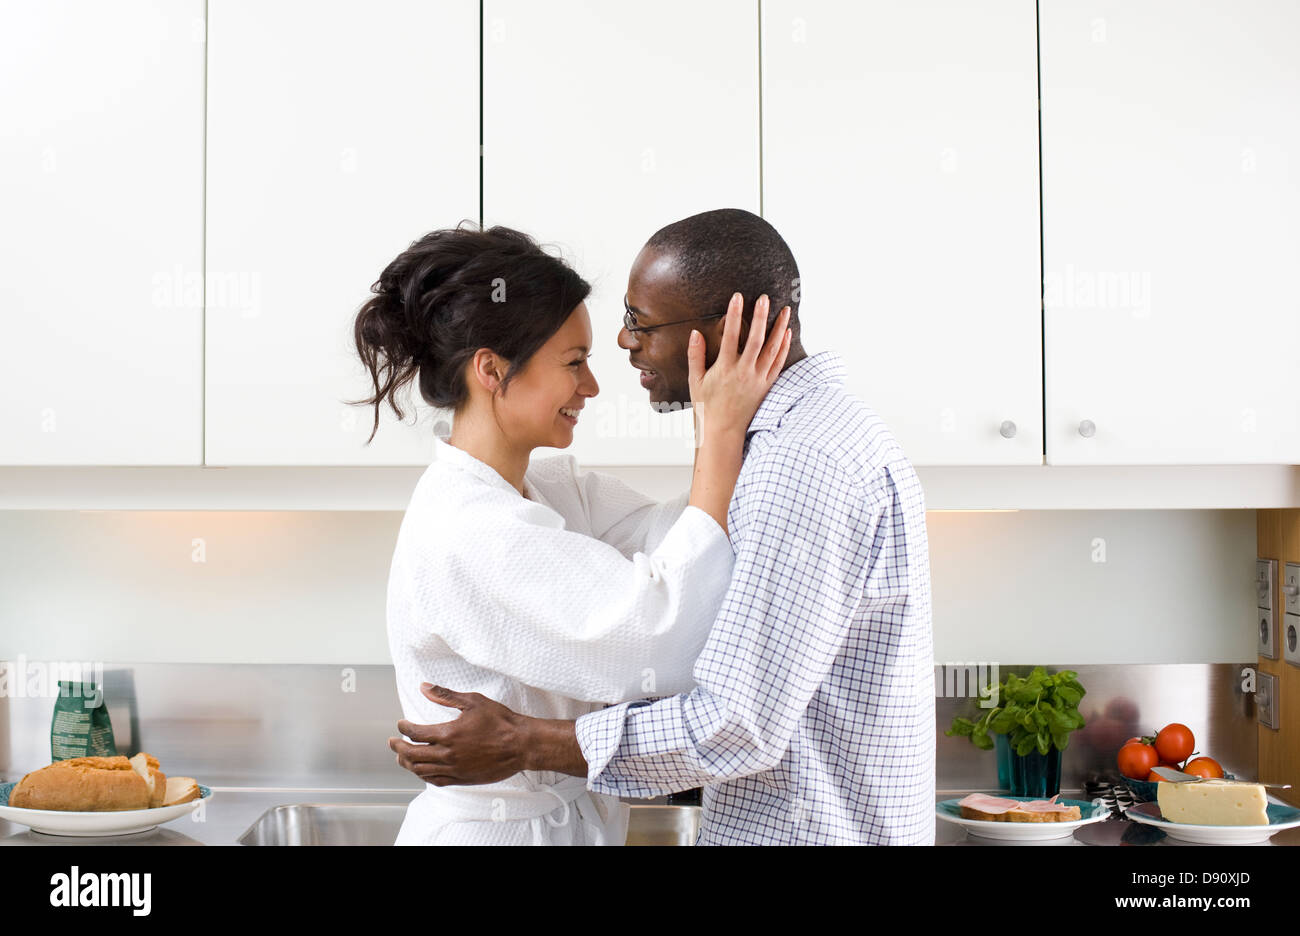 Couple embracing in kitchen in morning - Stock Image